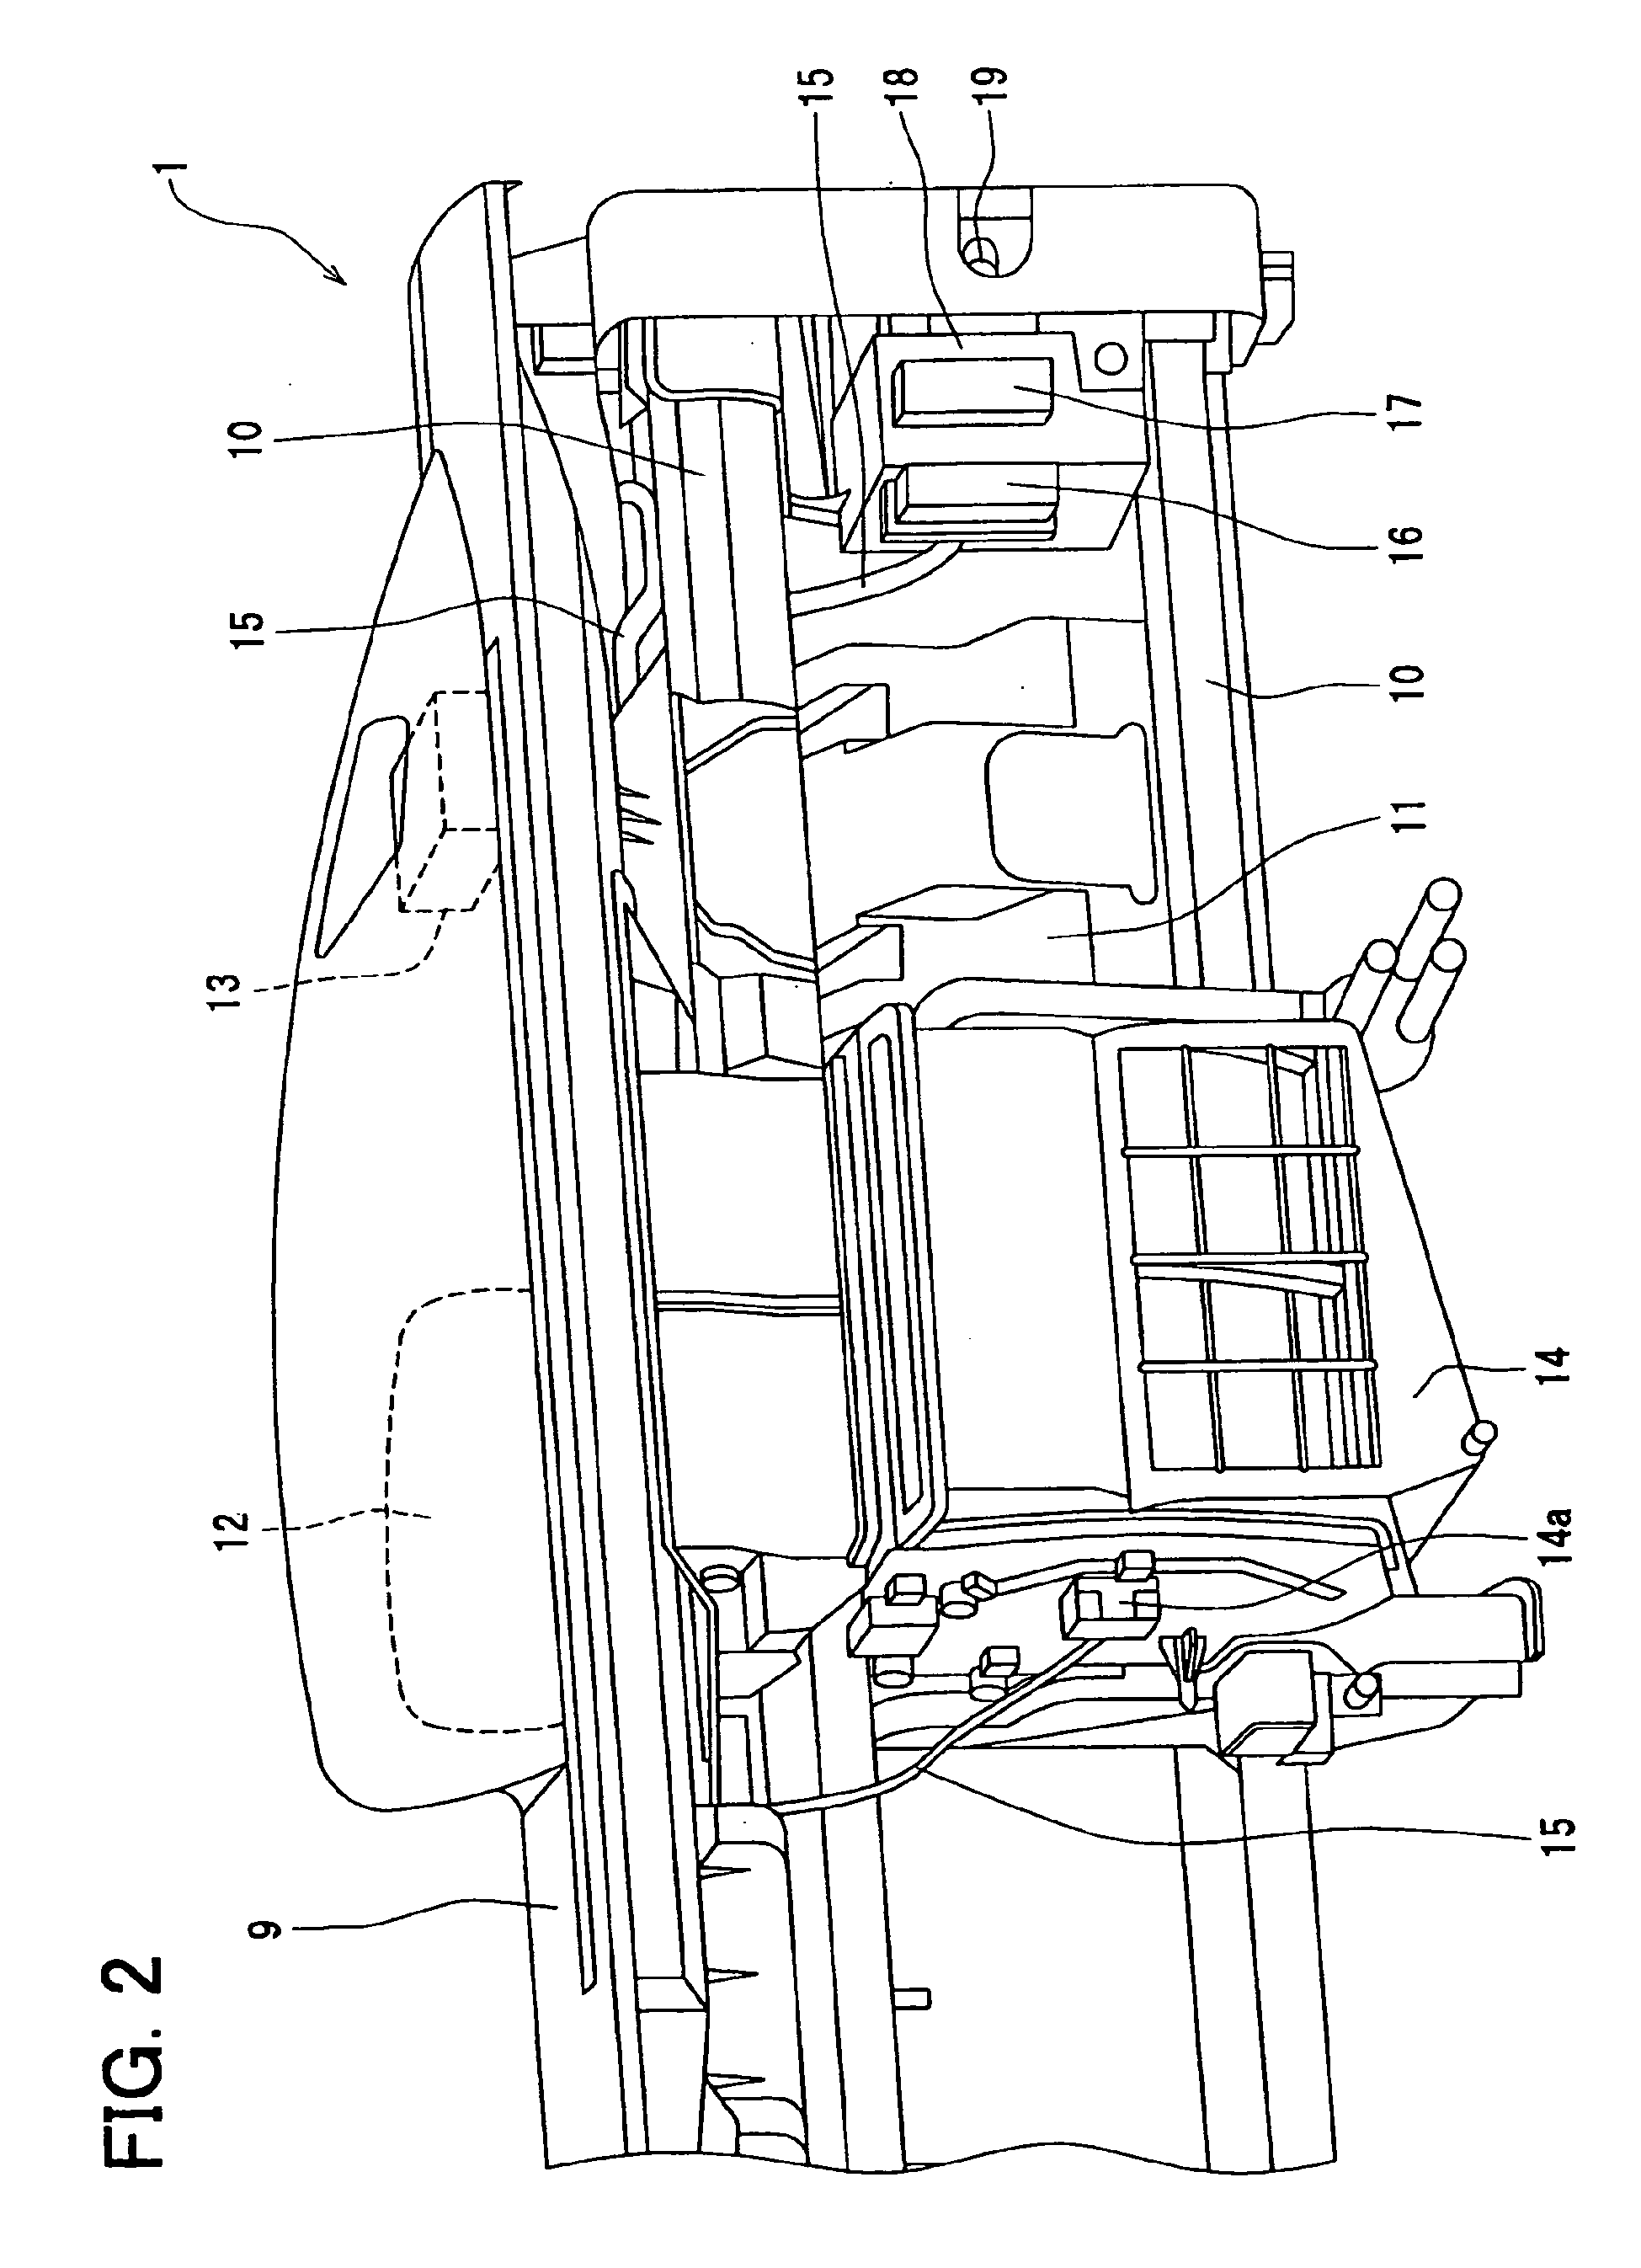 patent ep1591351b1 - electric inspection device of cockpit module assembly for vehicle